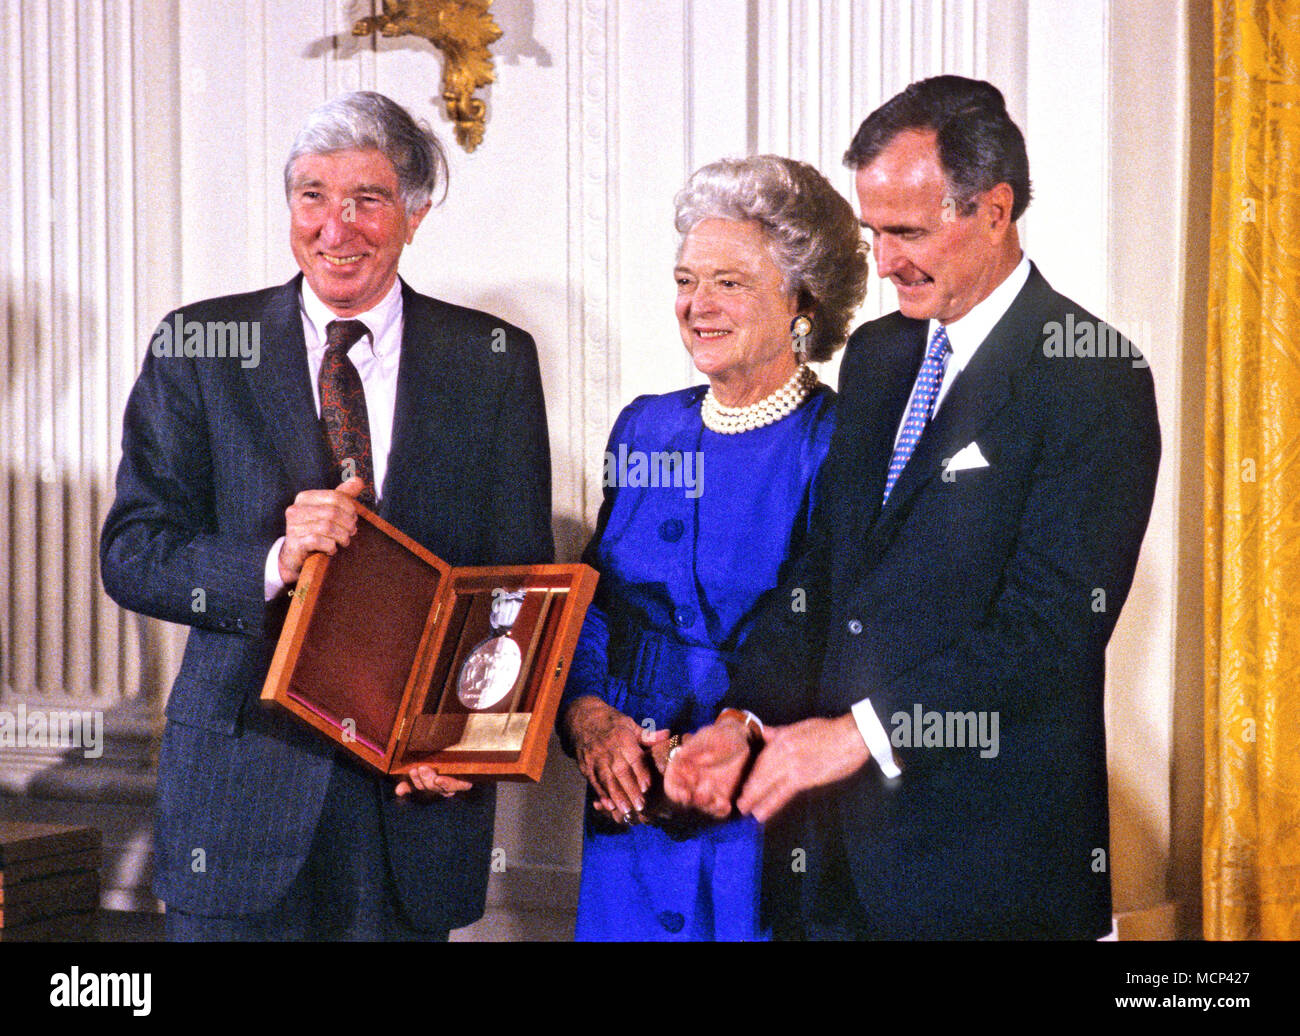 ***FILE PHOO*** BARBARA BUSH HAS PASSED AWAY (1925-2018) United States President George H.W. Bush and first lady Barbara Bush present the National Medal of Arts to American novelist, poet, short story writer, art critic, and literary critic John Updike during a ceremony in the East Room of the White House in Washington, DC on November 19, 1989. Credit: Ron Sachs/CNP /MediaPunch - Stock Image